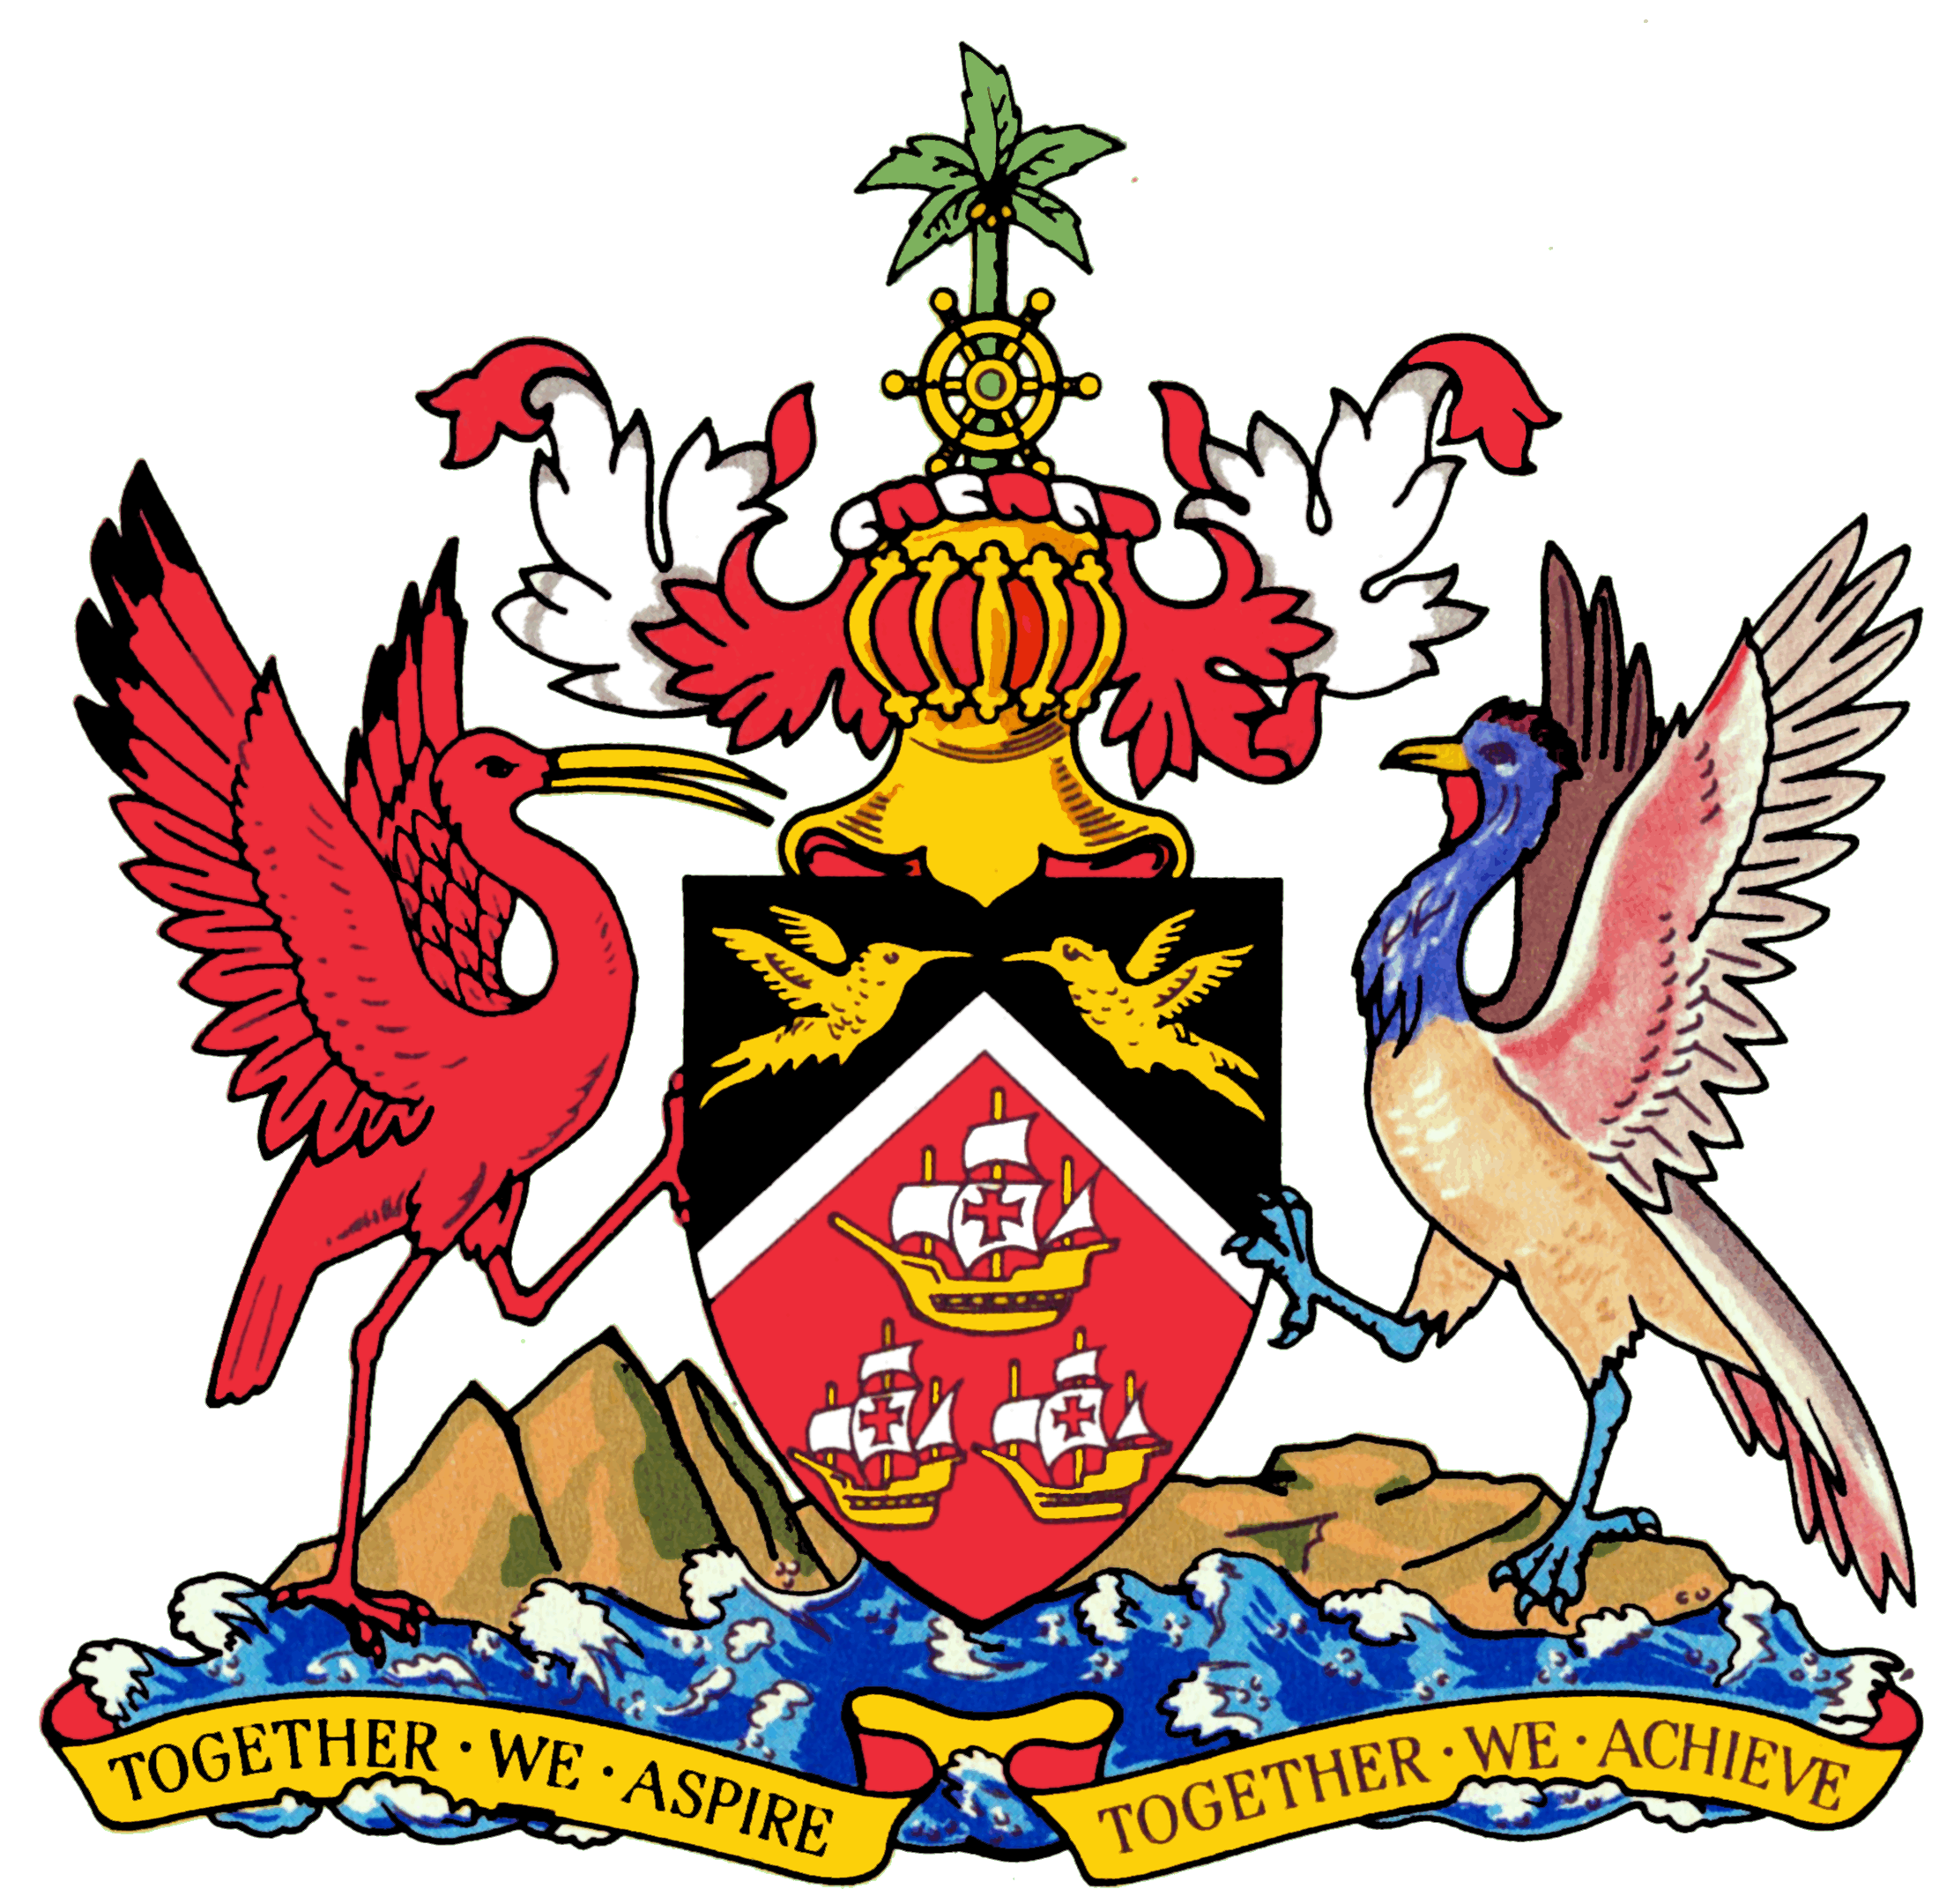 juvenile delinquency reference to school violence in english coat of arms of trinidad and tobago italiano stemma di trinidad e